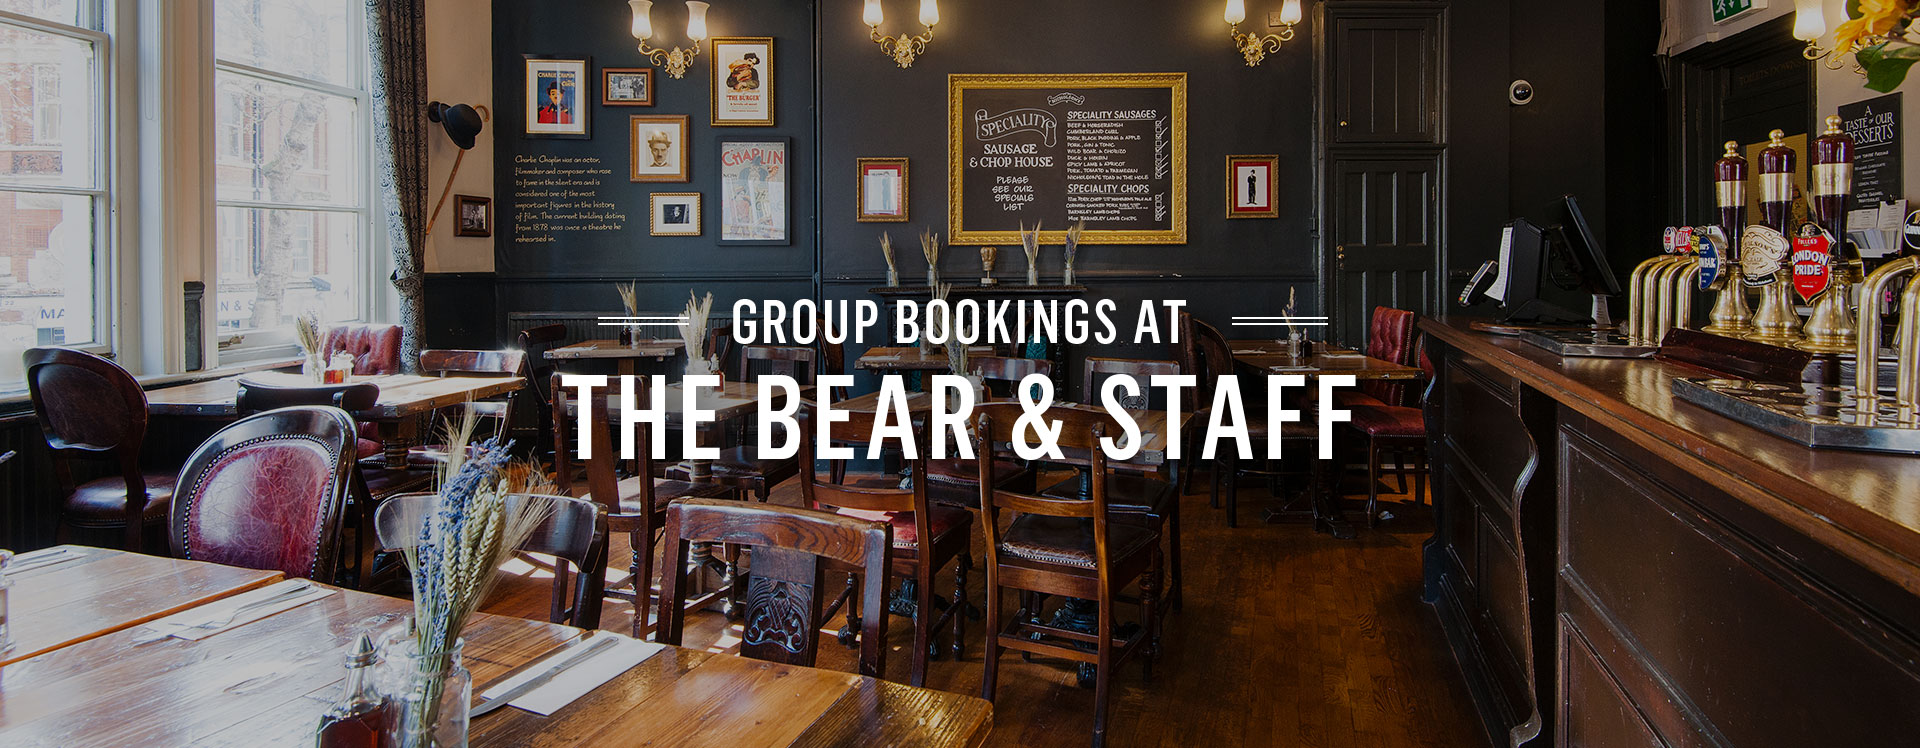 Group Bookings at The Bear and Staff